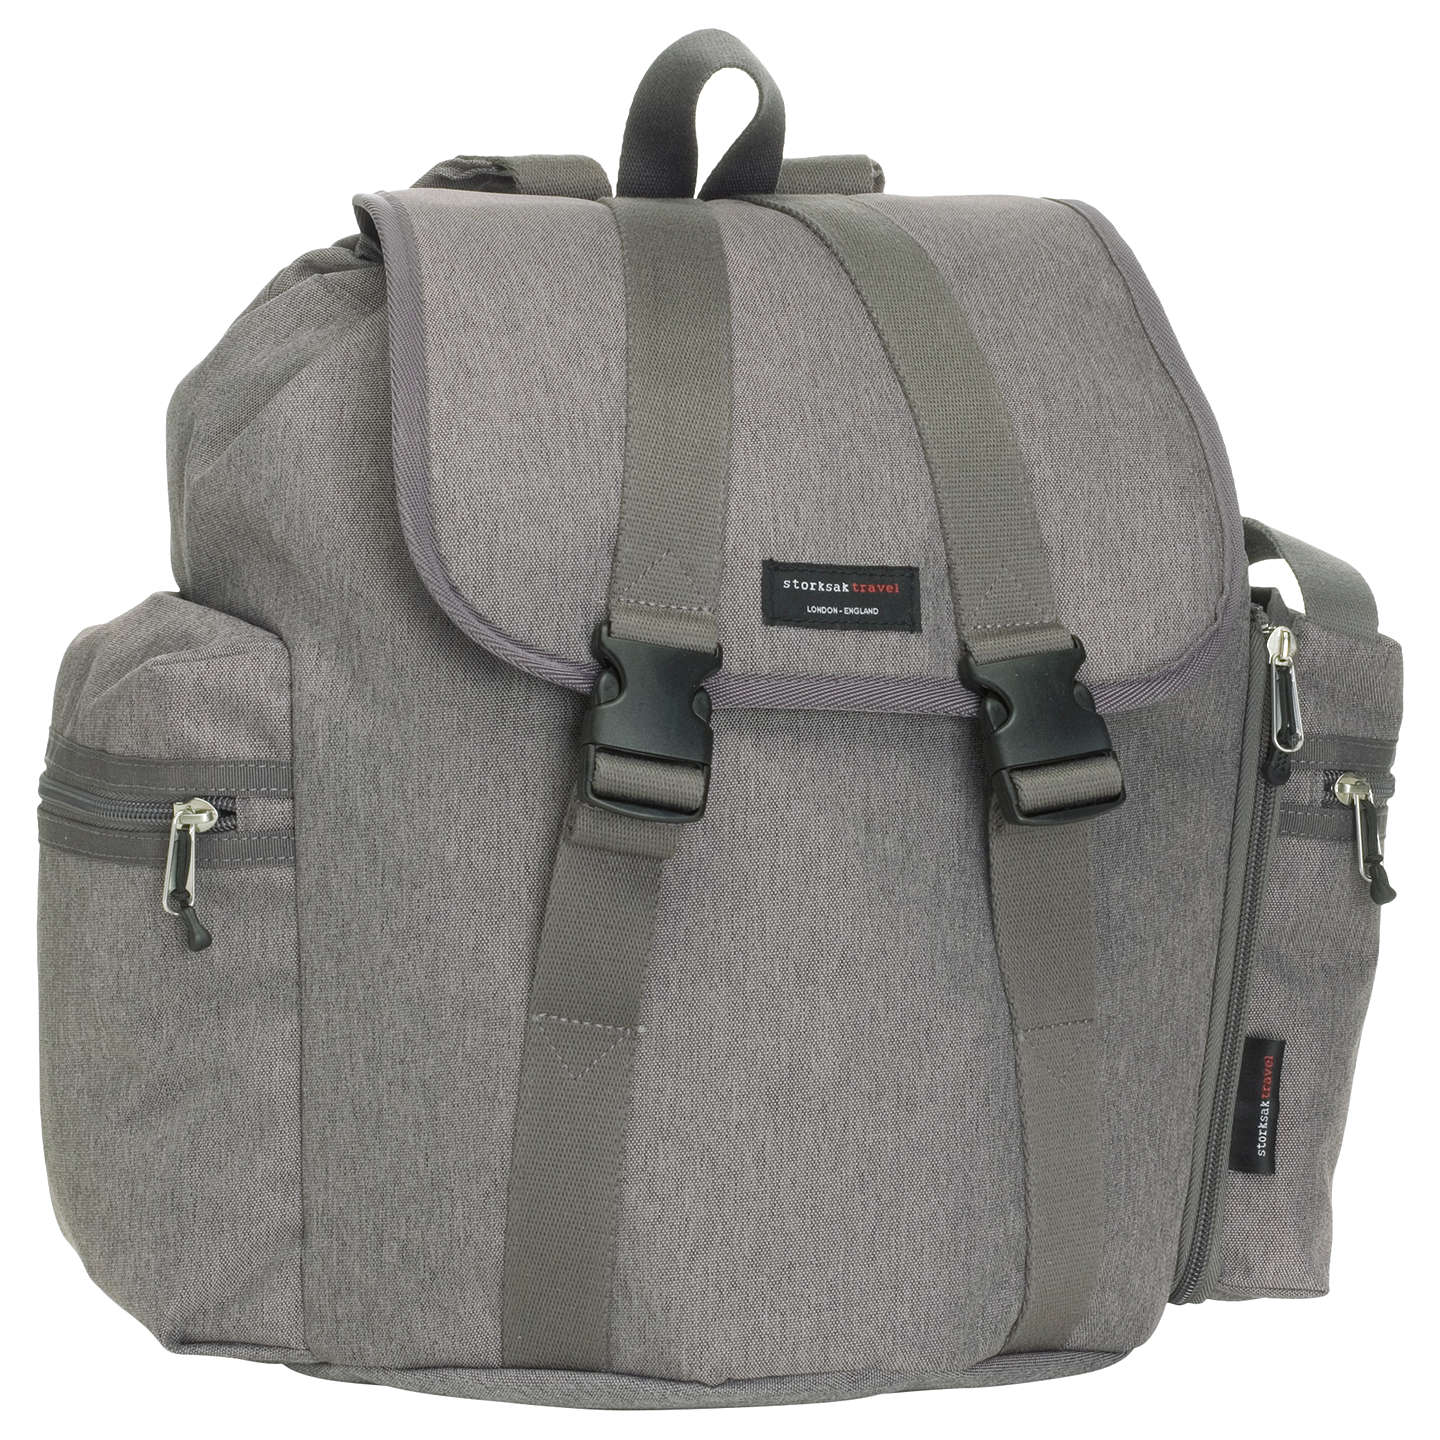 BuyStorksak Travel Backpack Bag, Grey Online at johnlewis.com